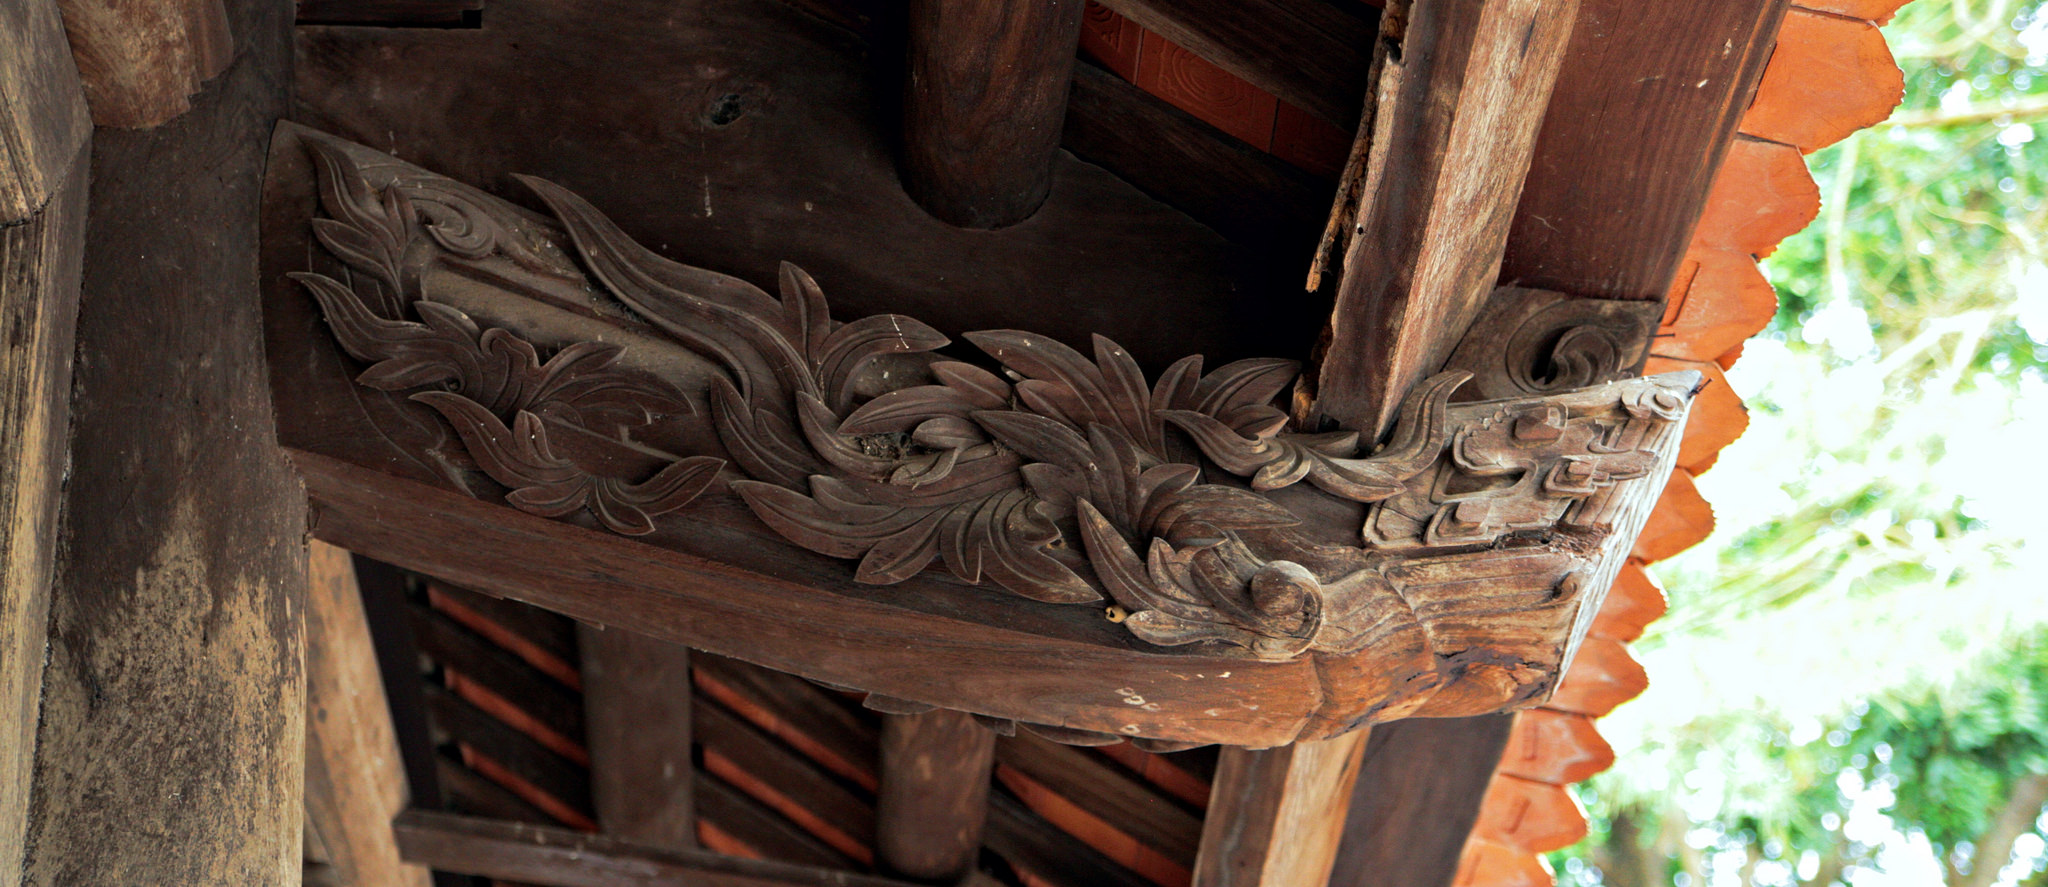 Beautiful carving at Duc La Pagoda, Vietnam